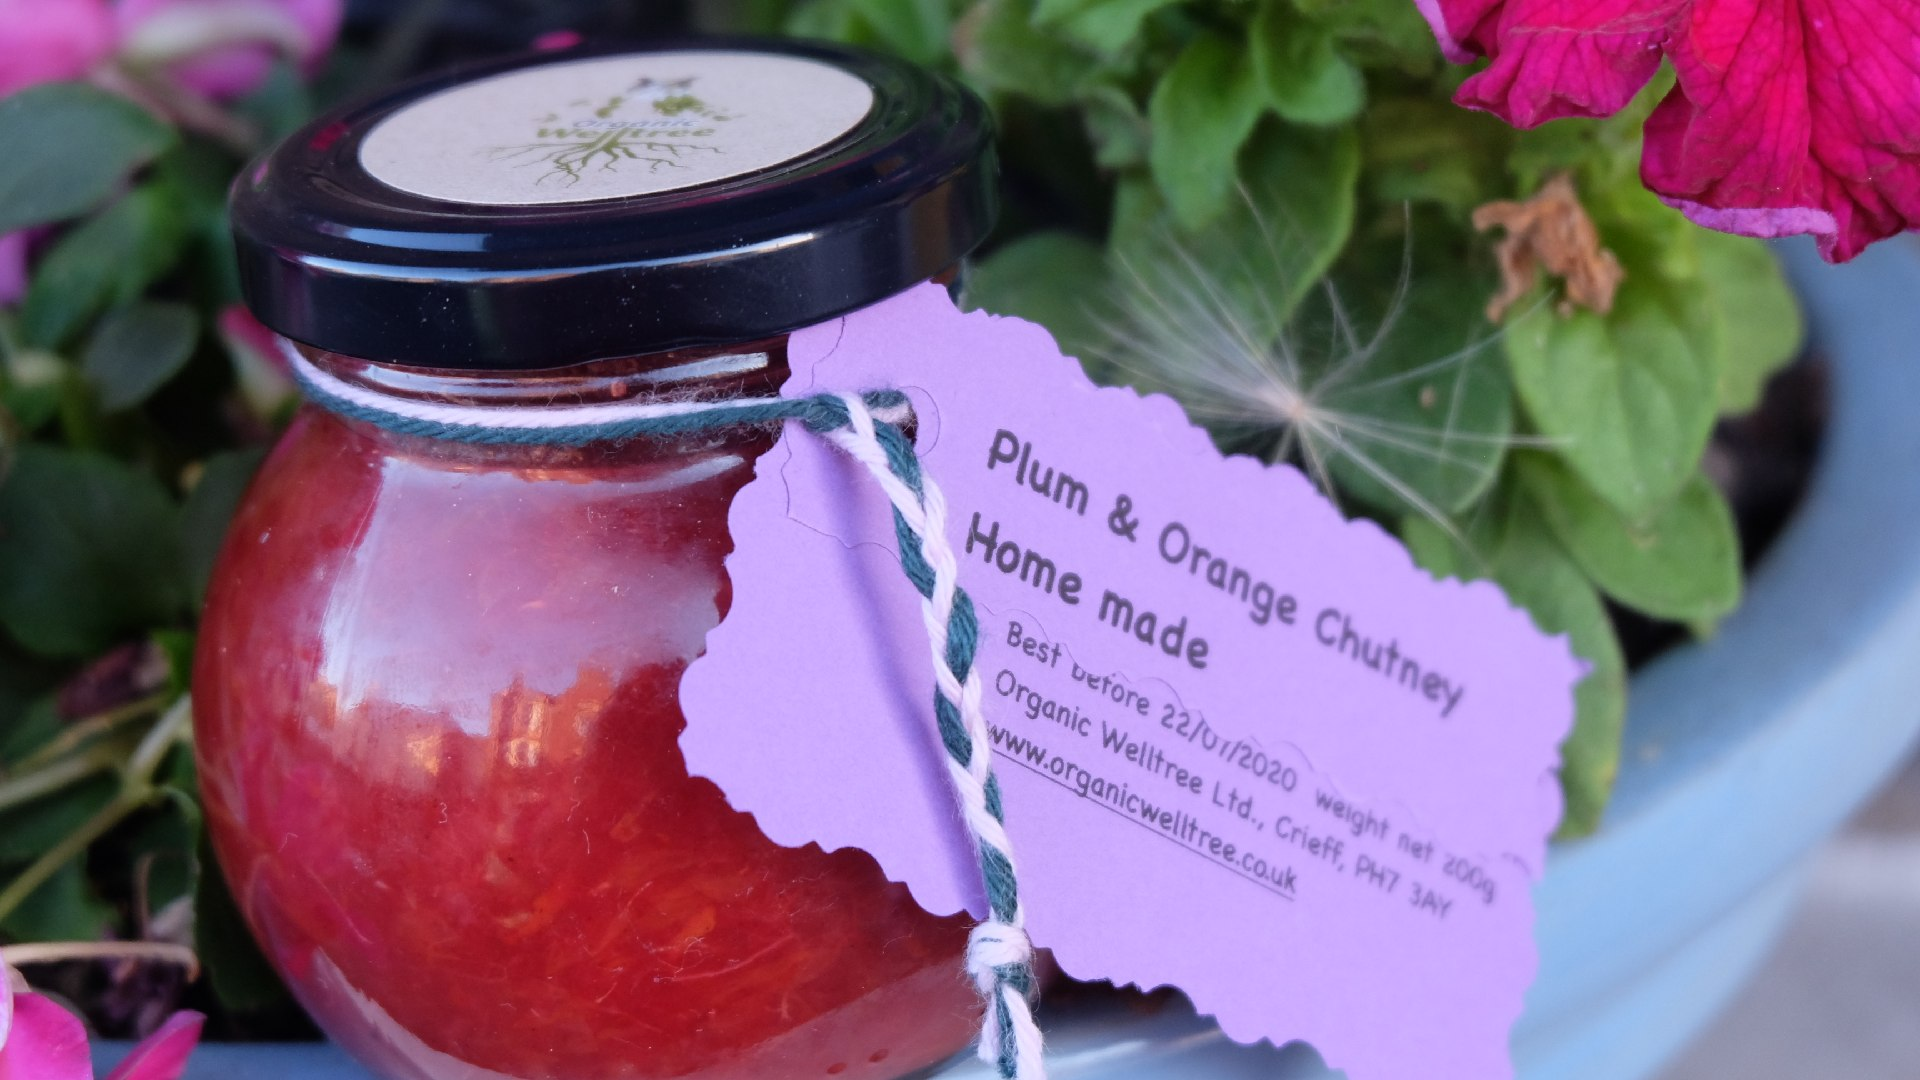 Plum and Orange Chutney